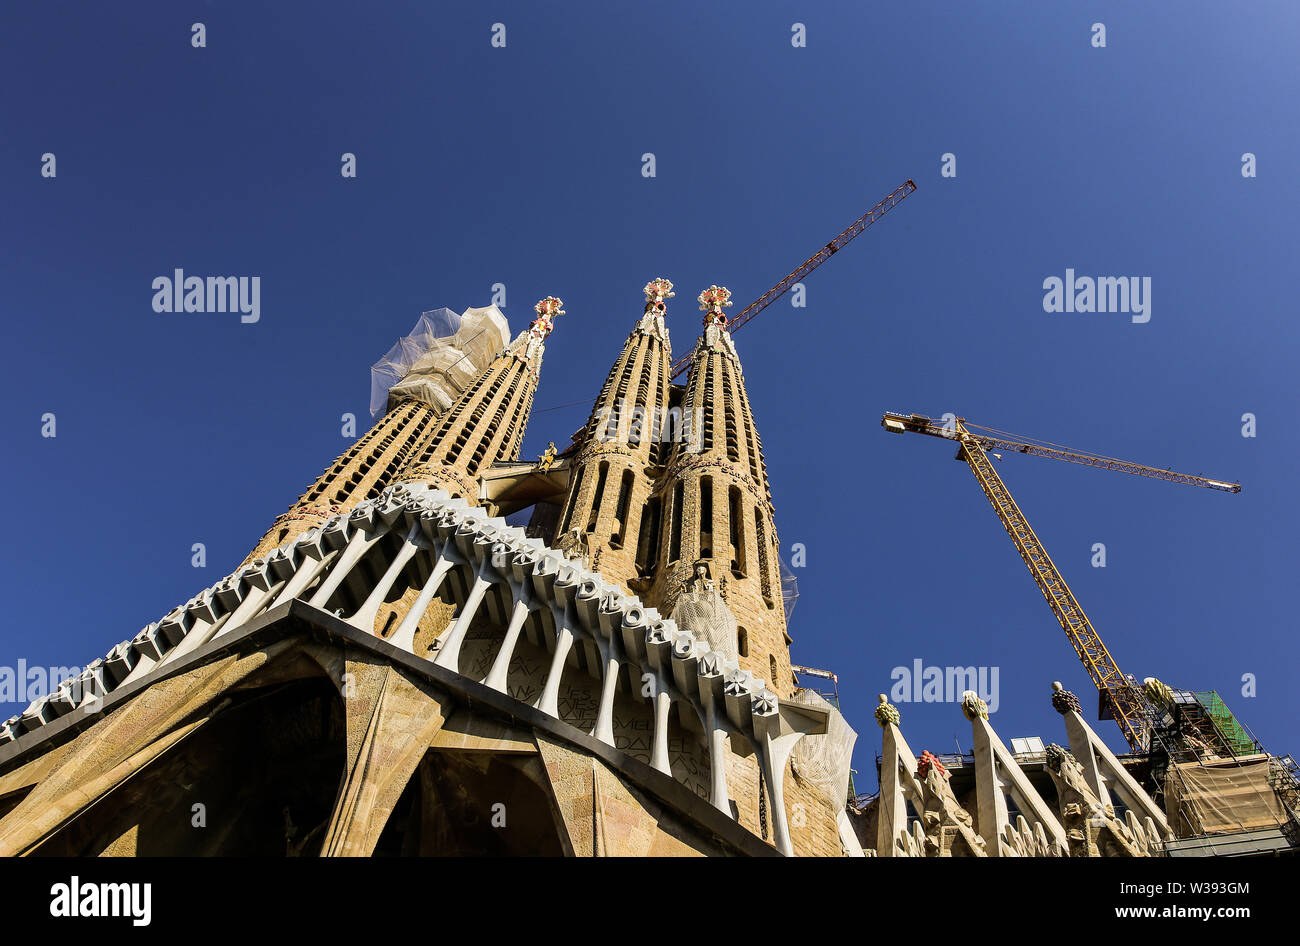 Barcelona, Spain. November 14, 2017. Entrance to the Sagrada Family by Gaudi, Basilica in sunny day, no people, against the sky, no clouds, close-up - Stock Image